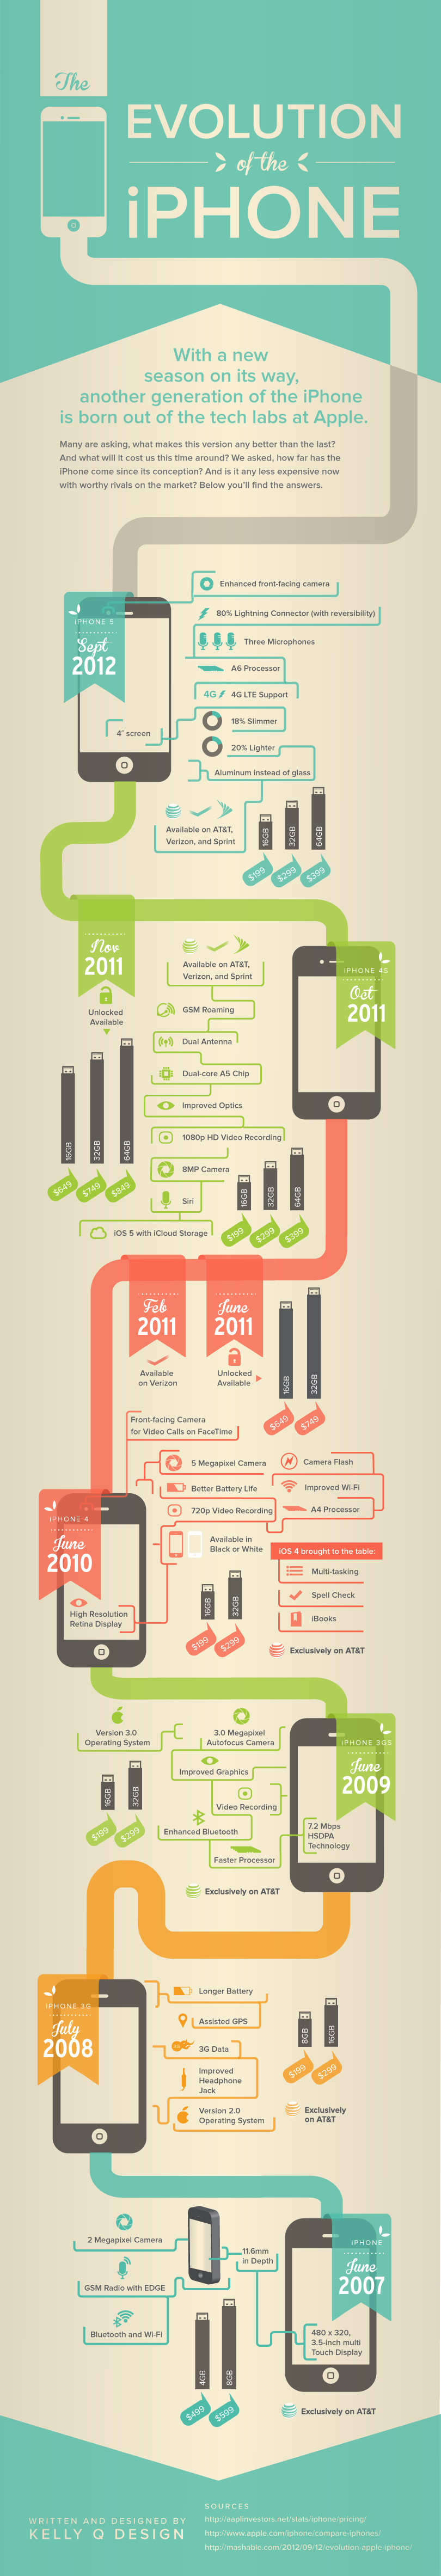 iPhone Evolution Completely Showcased [Infographic]